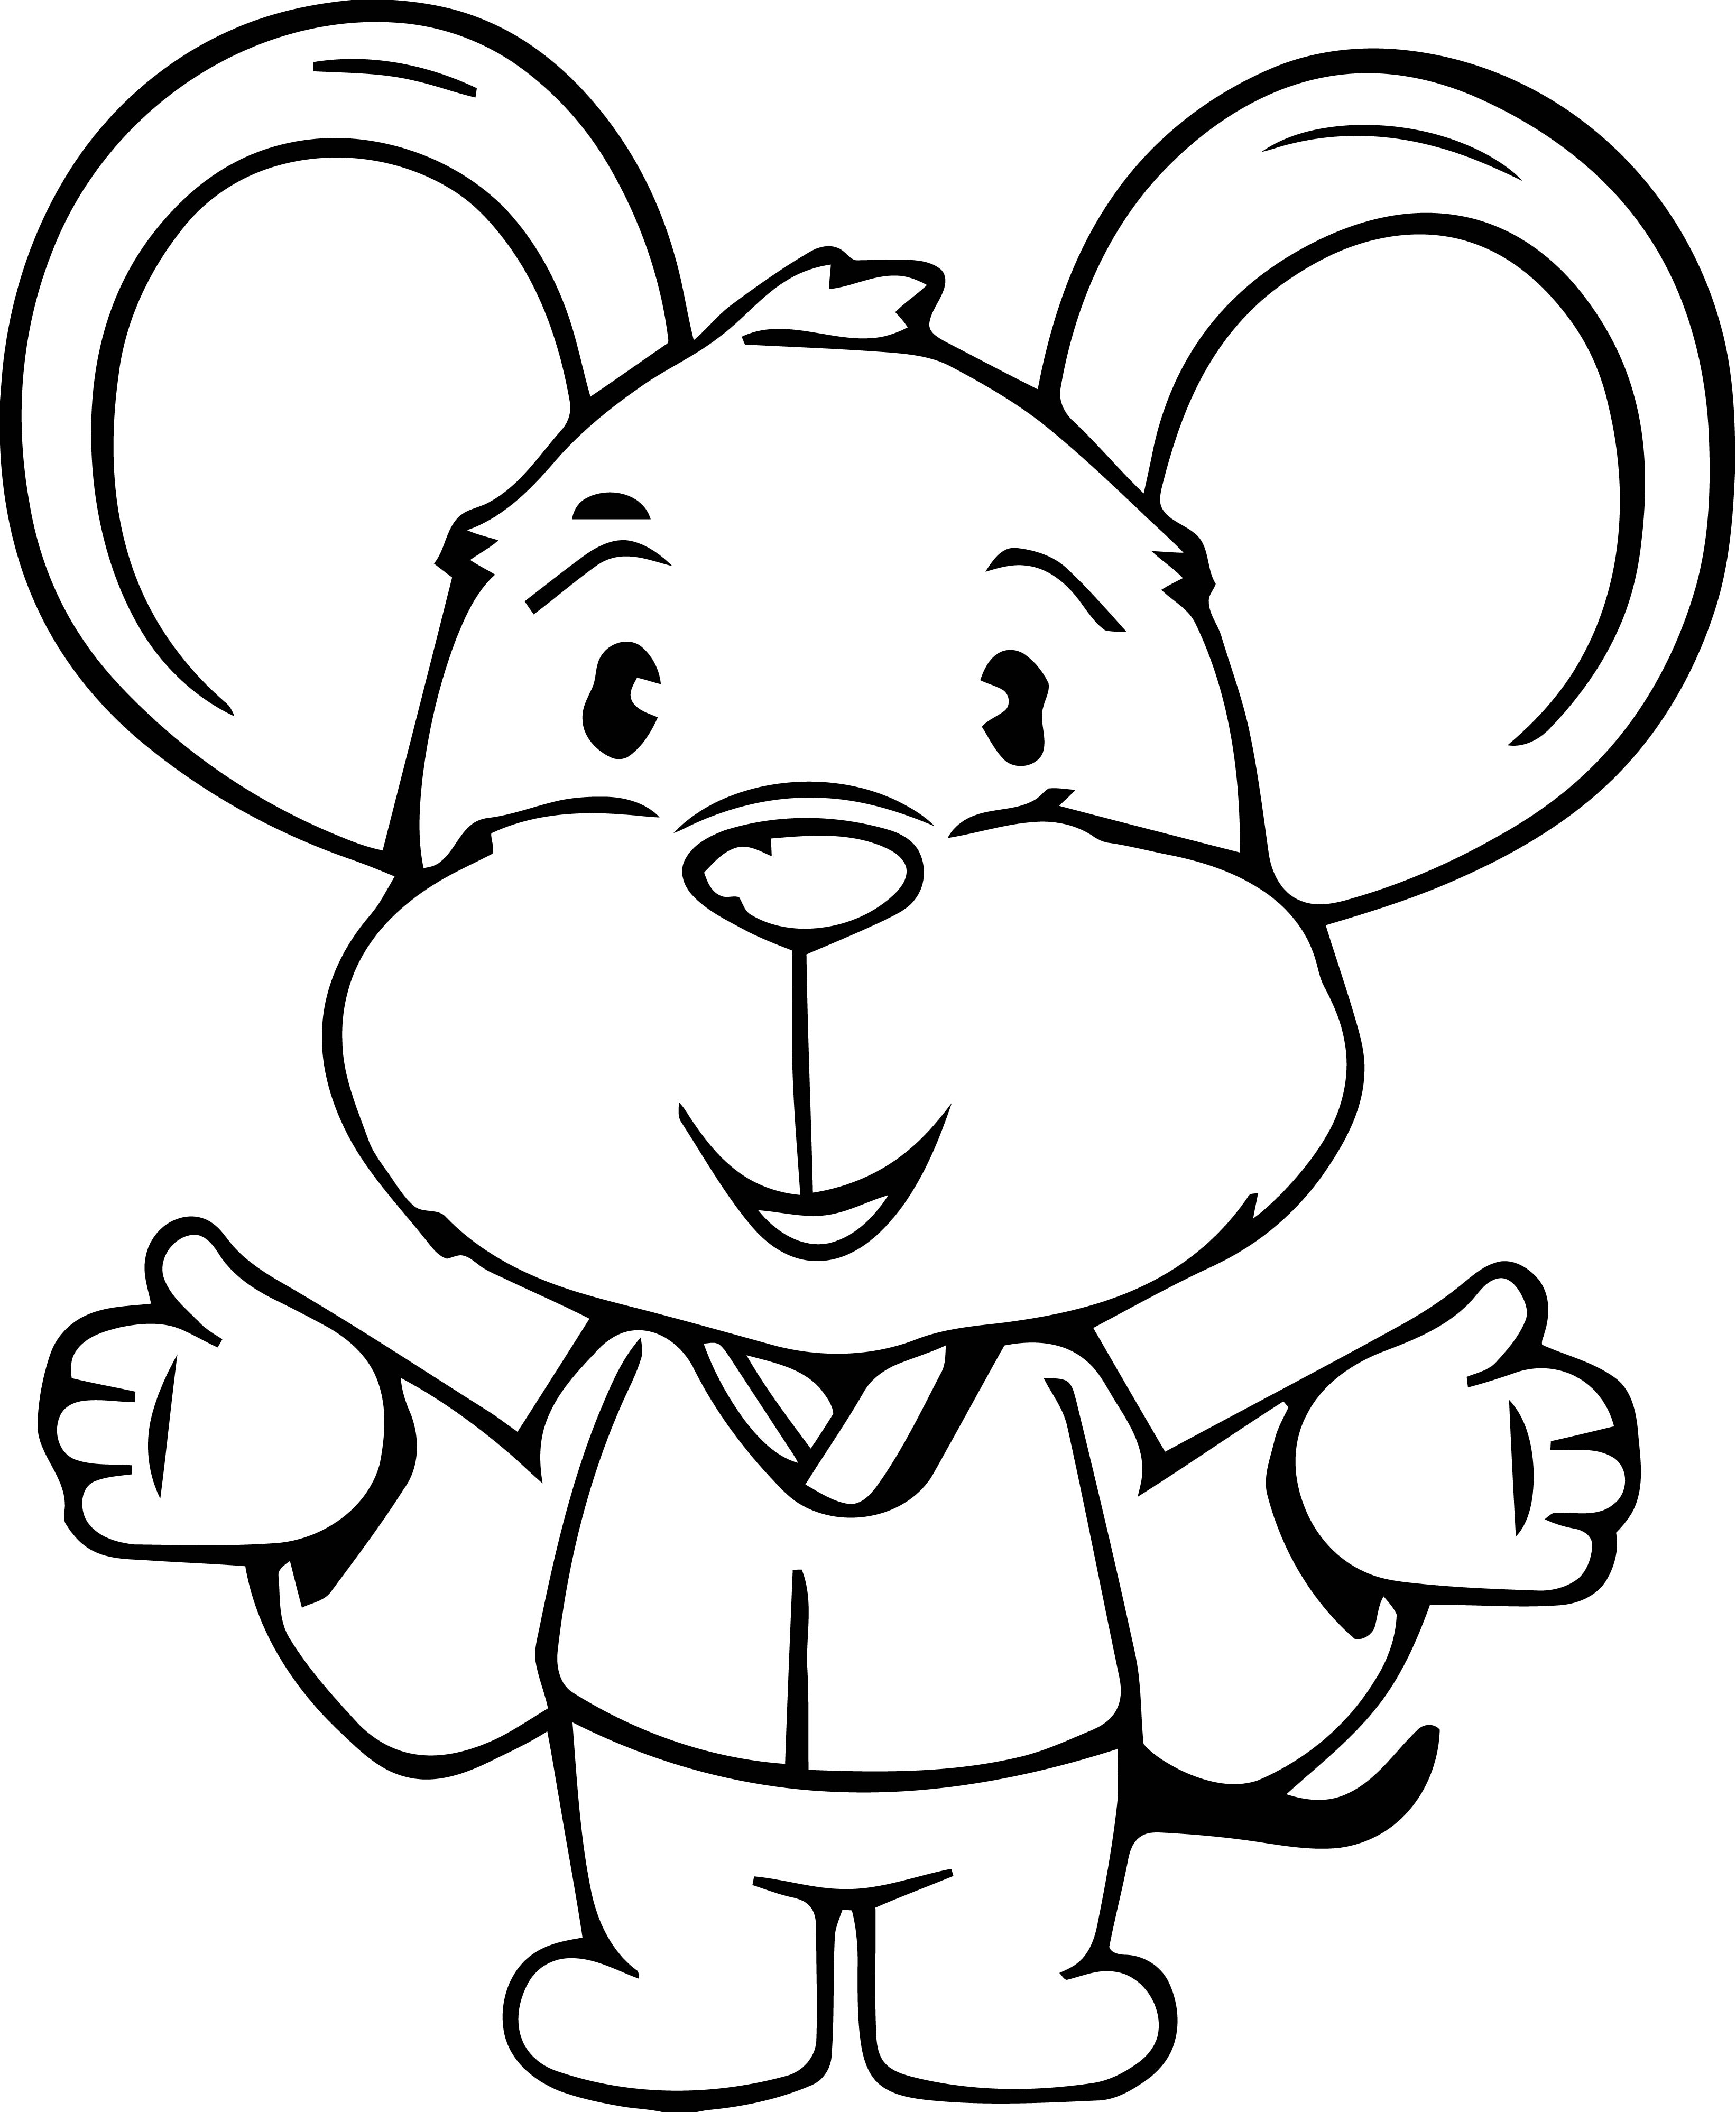 Mouse Jpeg Coloring Page 085